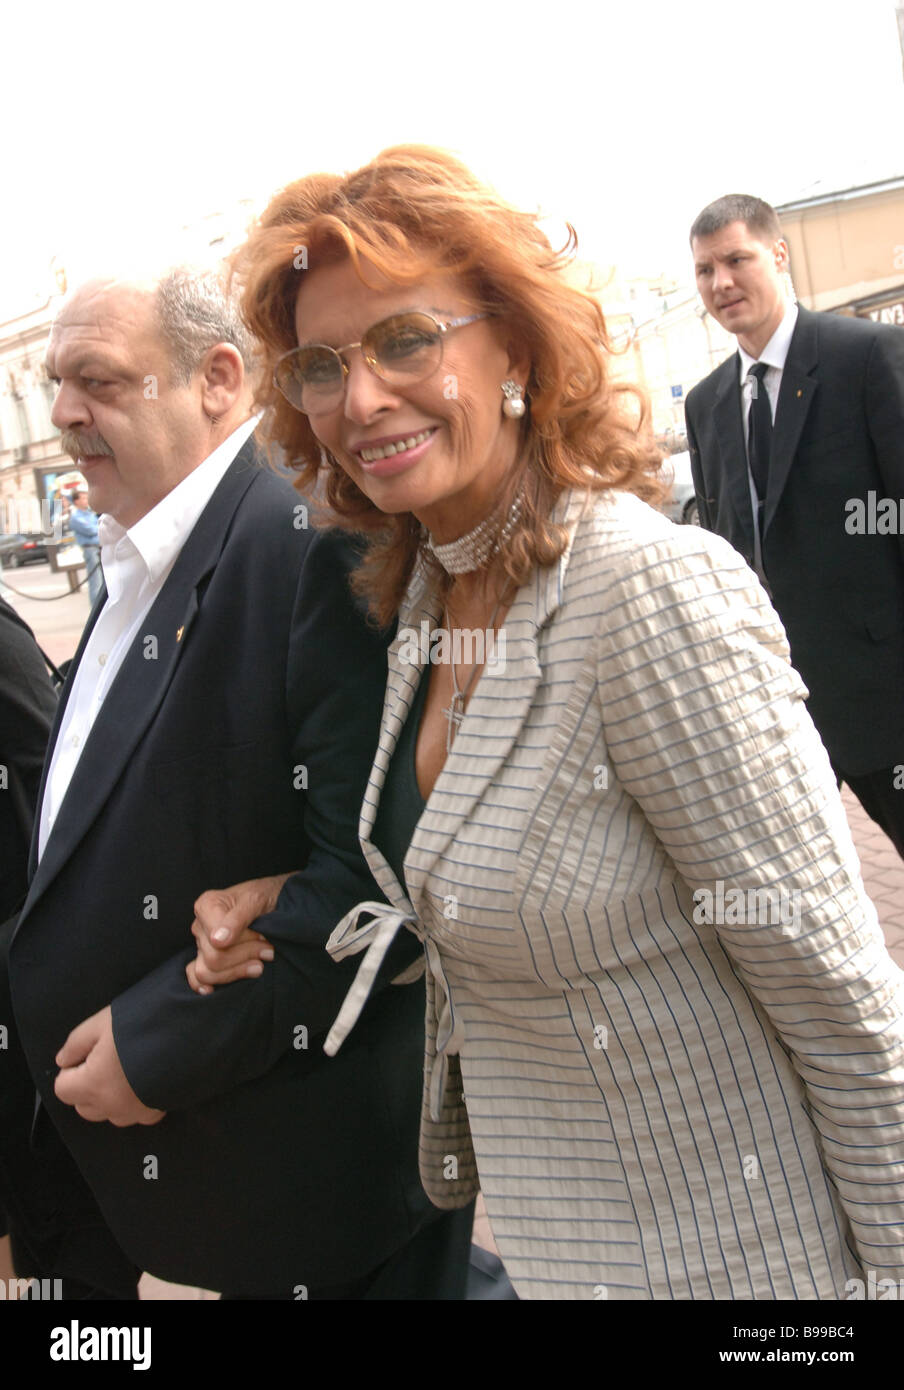 Italian film star Sophia Loren and television anchorman Yakov Brandt left Doctor of Medicine before the news conference - Stock Image